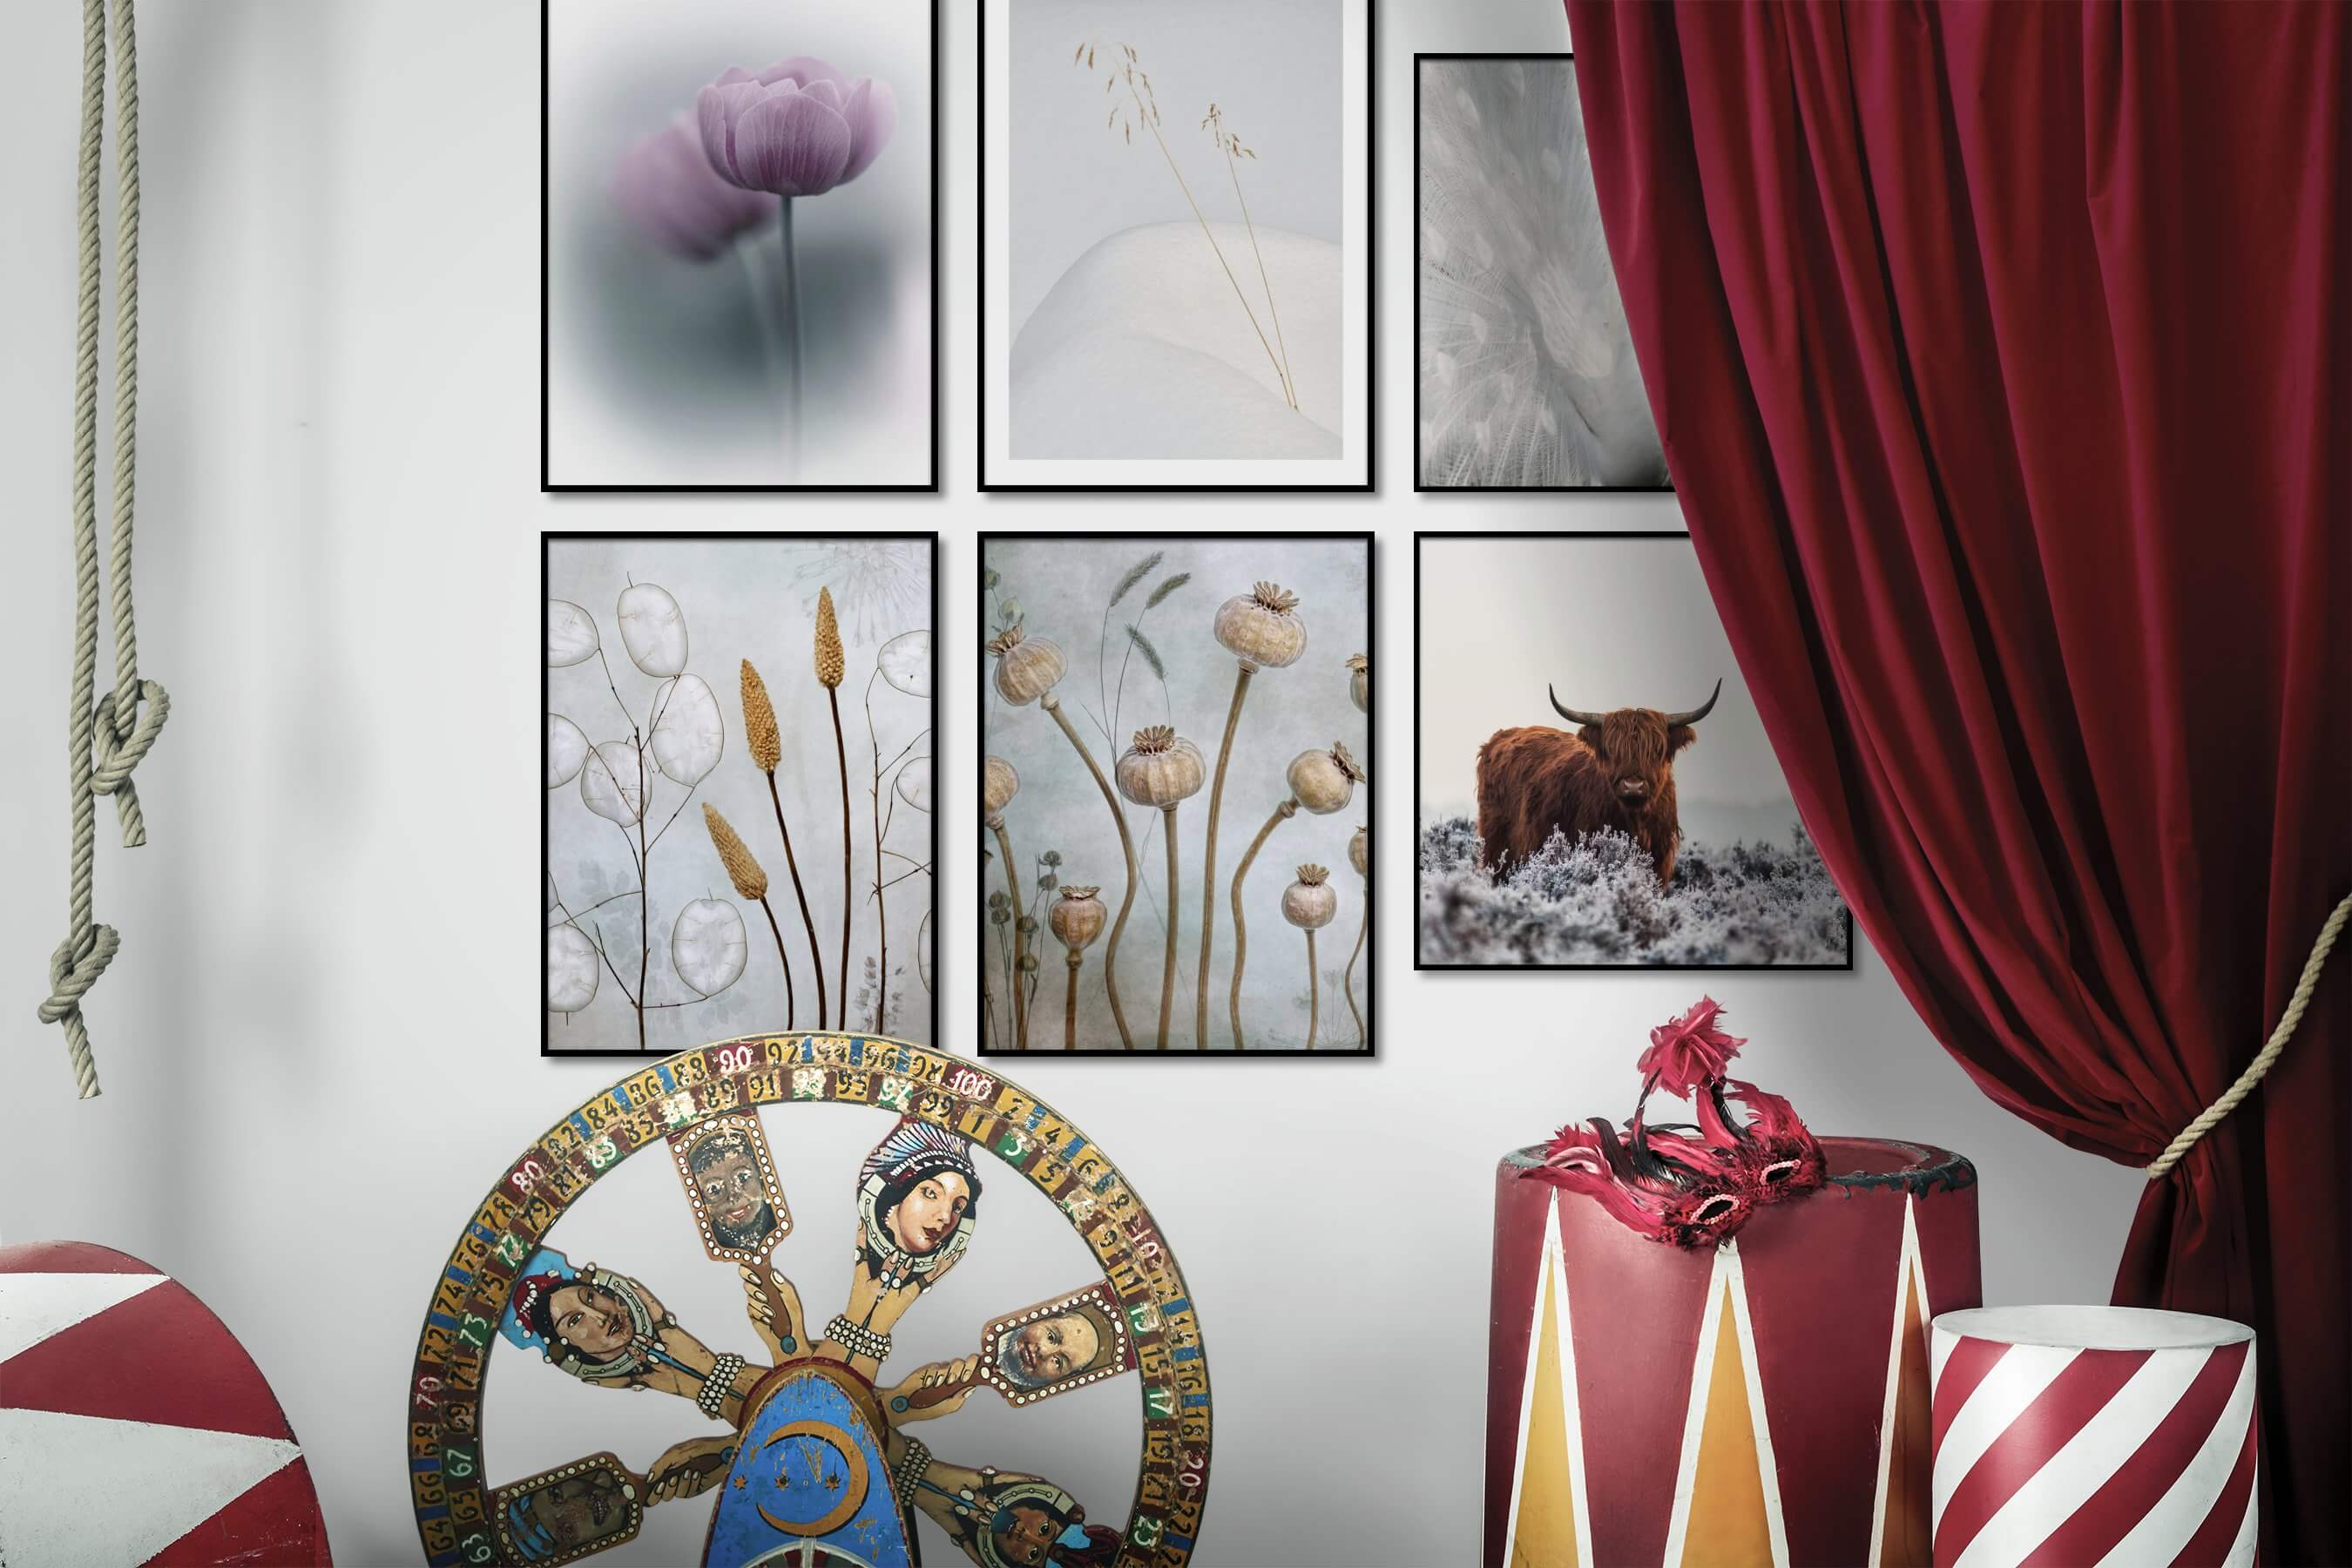 Gallery wall idea with six framed pictures arranged on a wall depicting Flowers & Plants, For the Minimalist, Mindfulness, Vintage, Animals, and Country Life